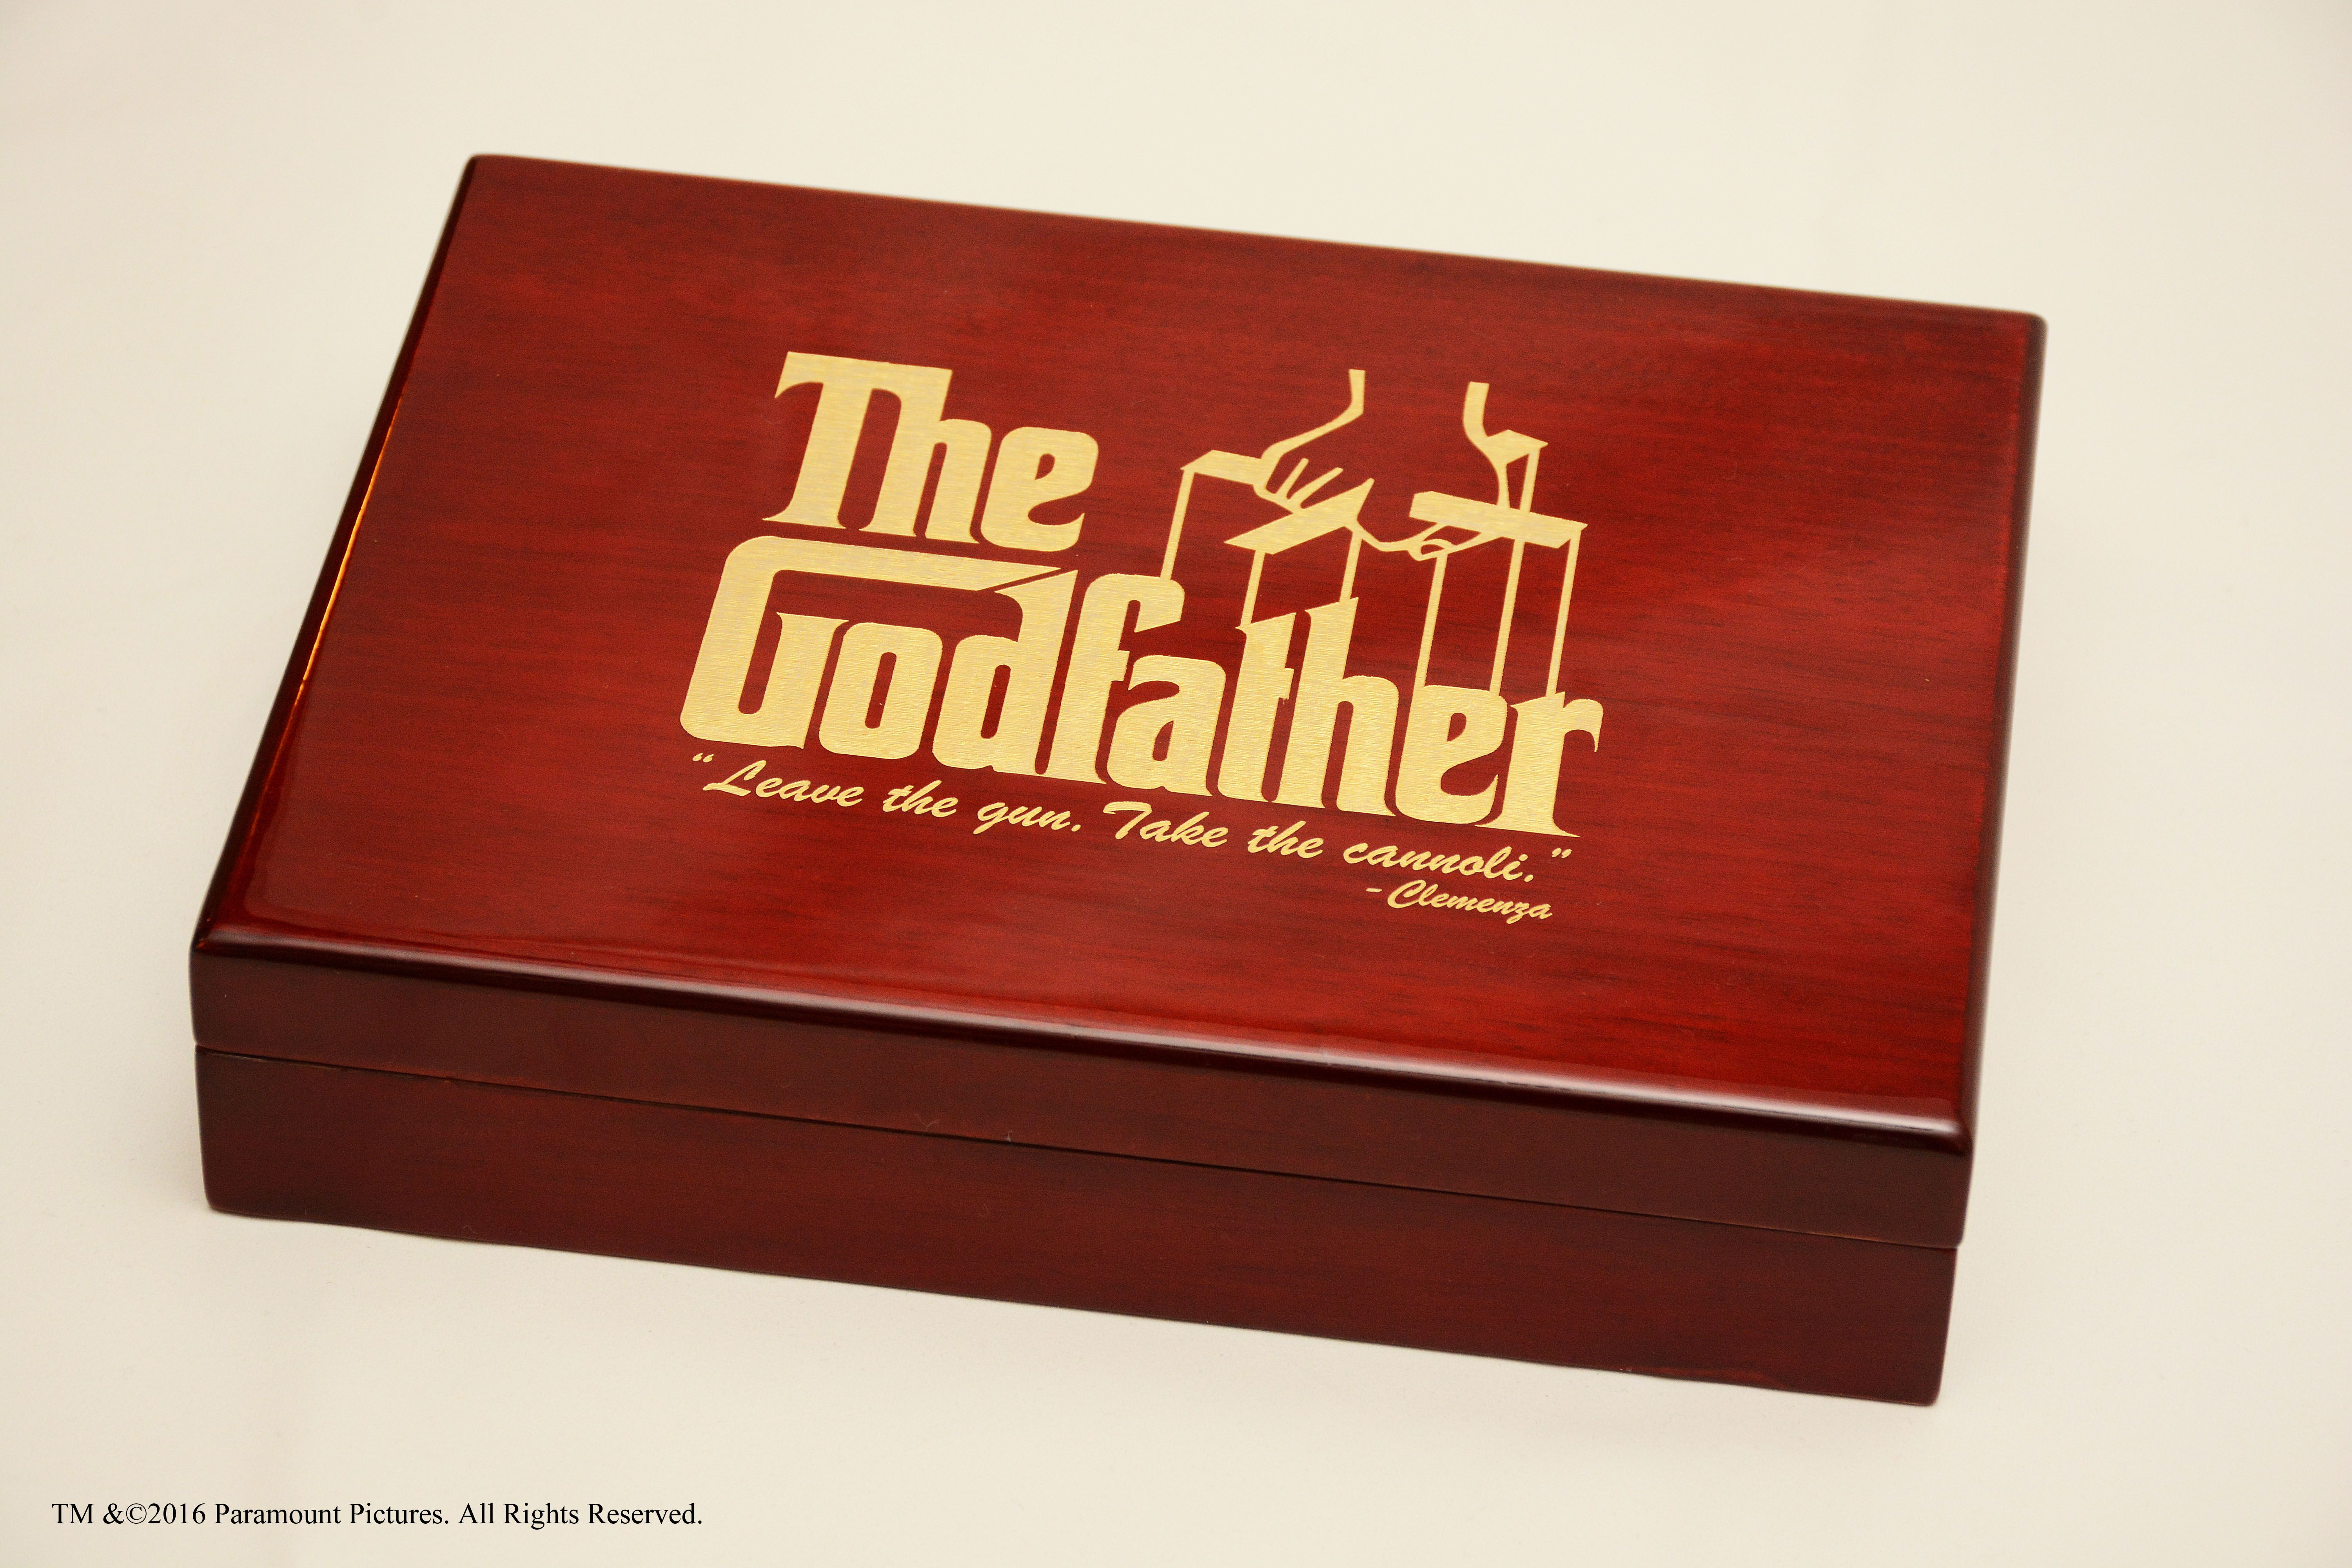 The Perfect Fathers Day Gift For Dad Grandpa Or A Father To Be And Cigar Connoisseurs This Redwood Hum Take The Cannoli The Godfather Wallpaper The Godfather